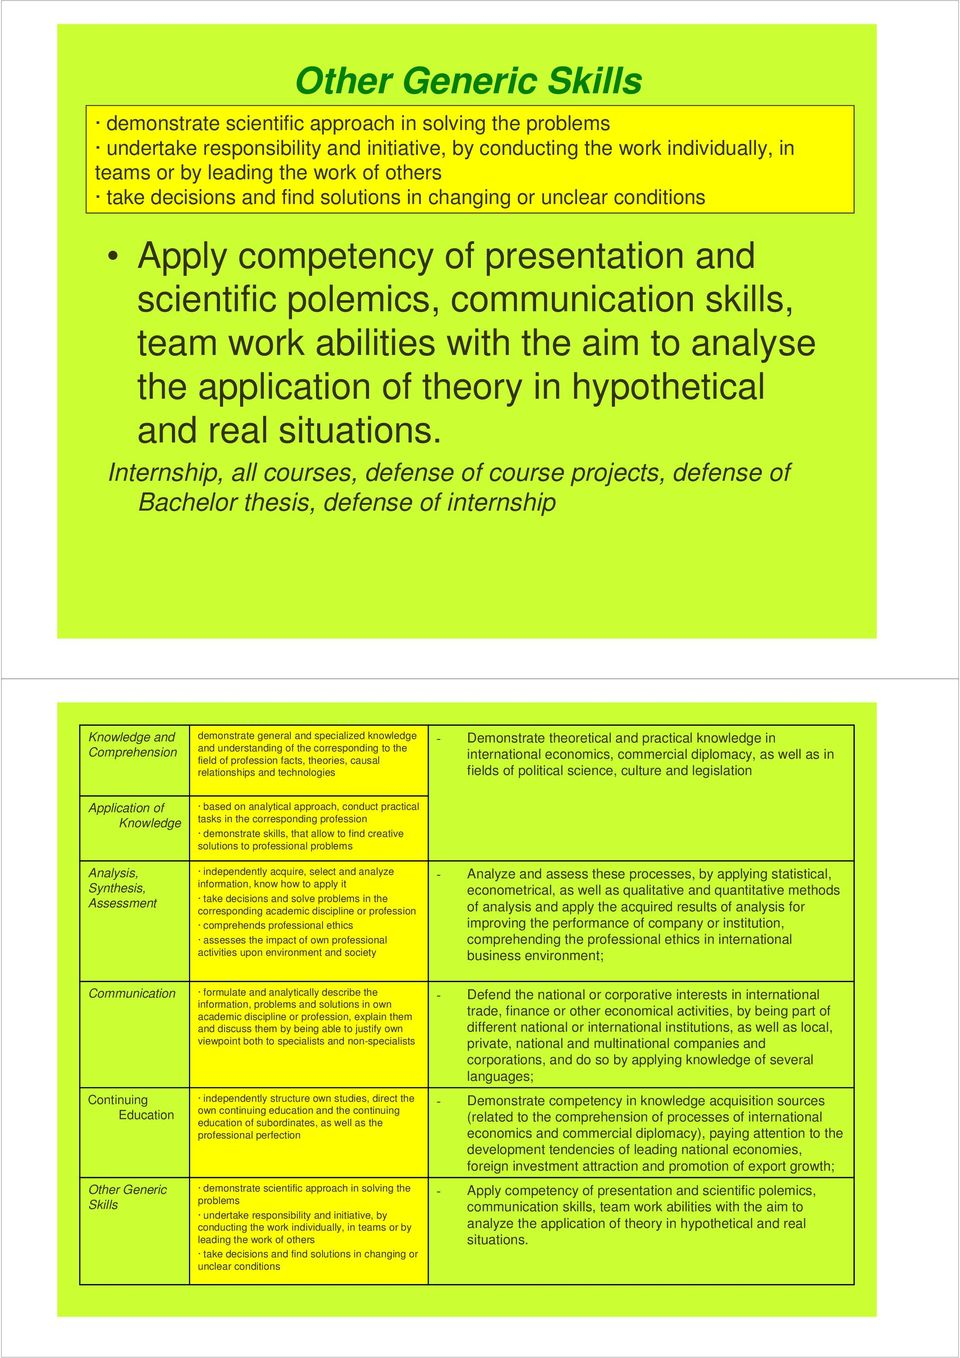 application of theory in hypothetical and real situations.